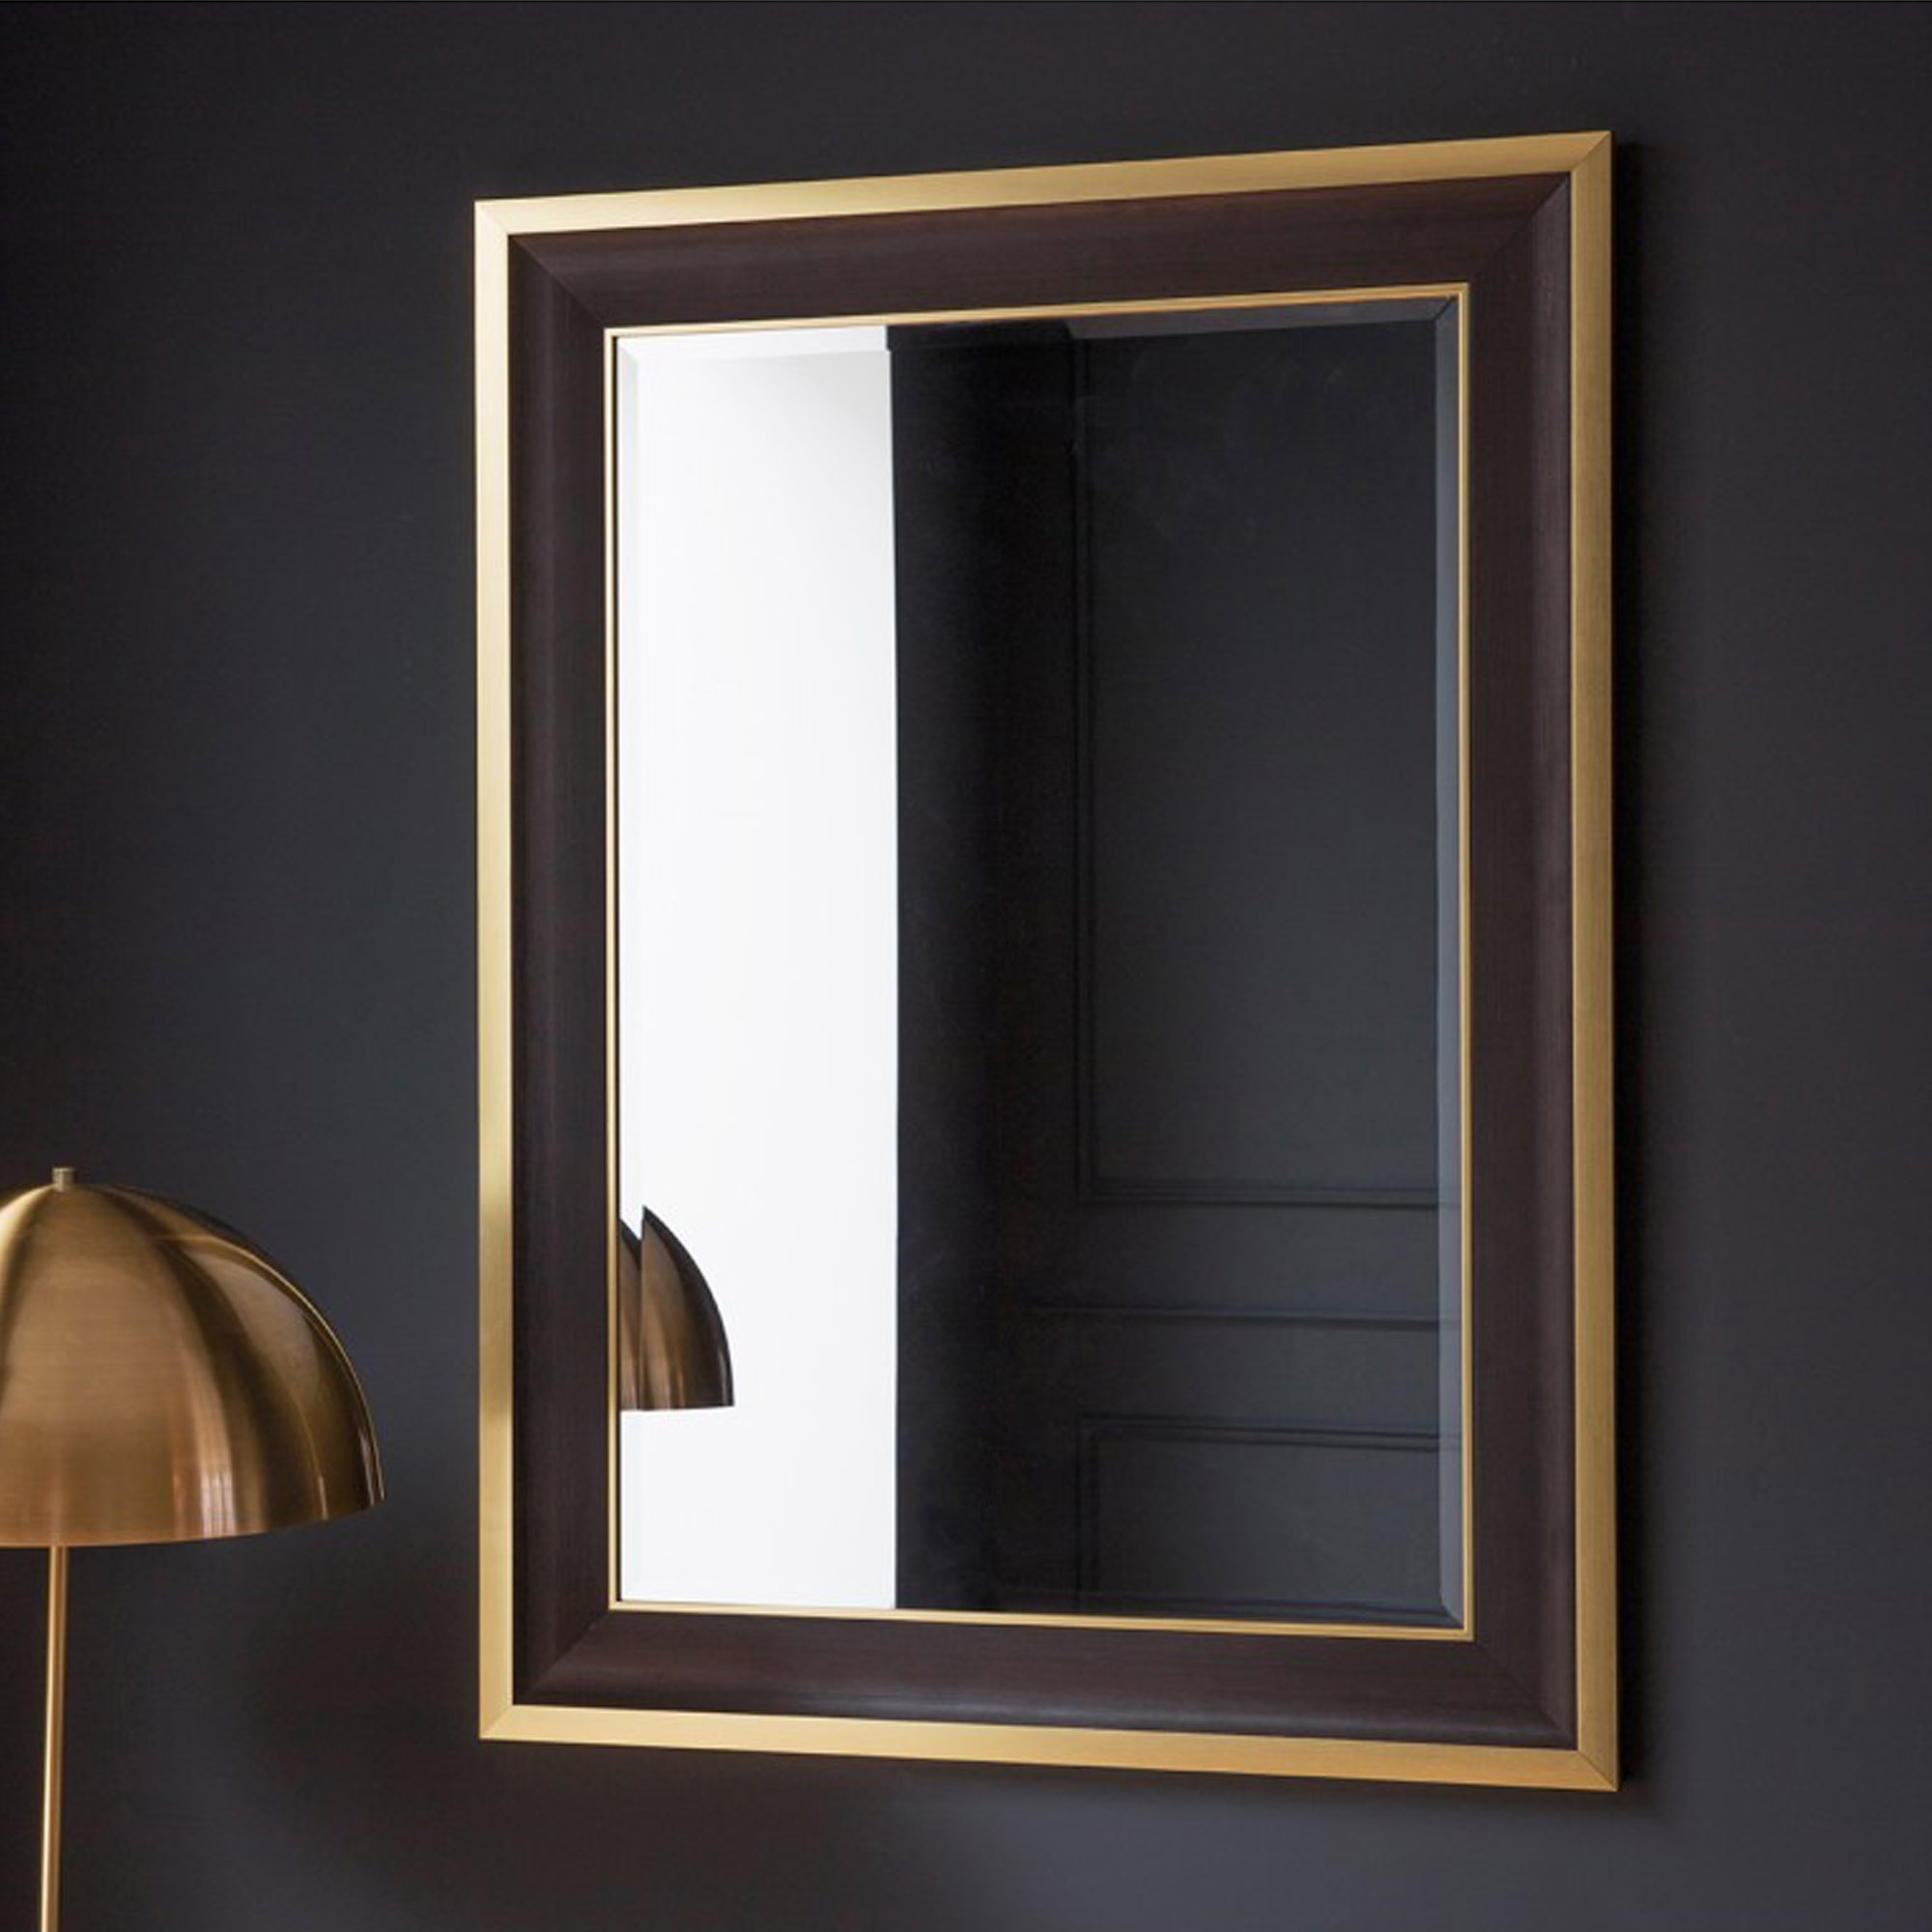 Edmonton Rectangle Wall Mirror Pertaining To Best And Newest Wall Mirrors (View 11 of 20)